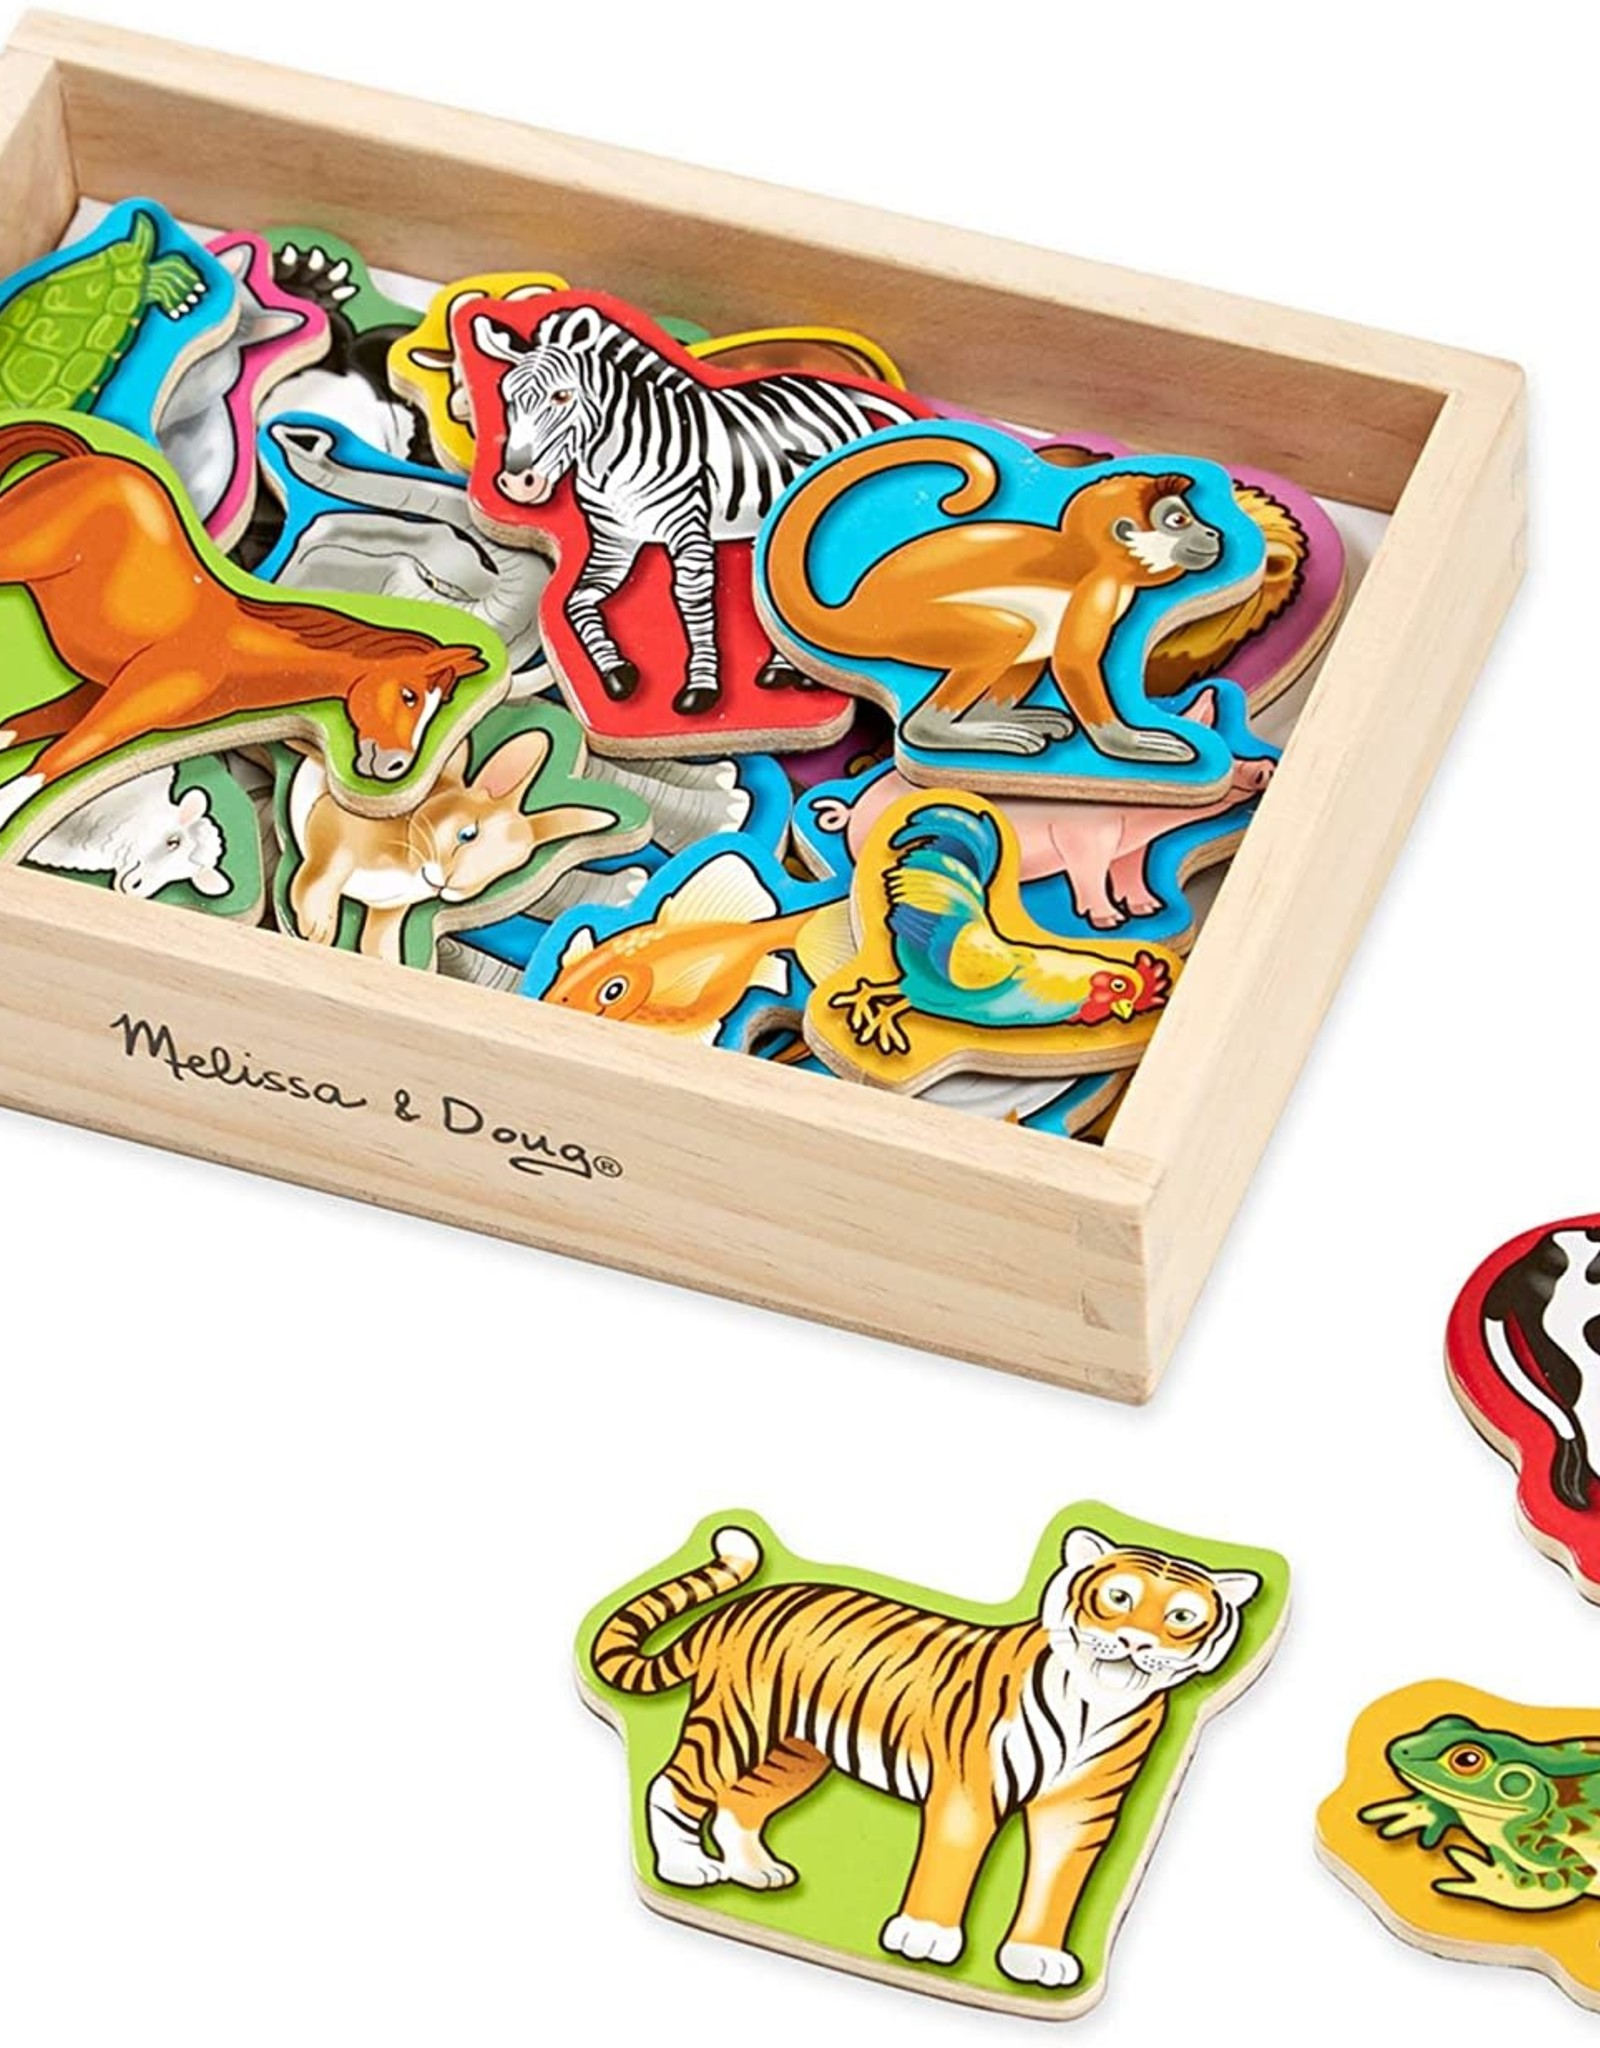 Melissa & Doug MD Wooden Magnets Animals